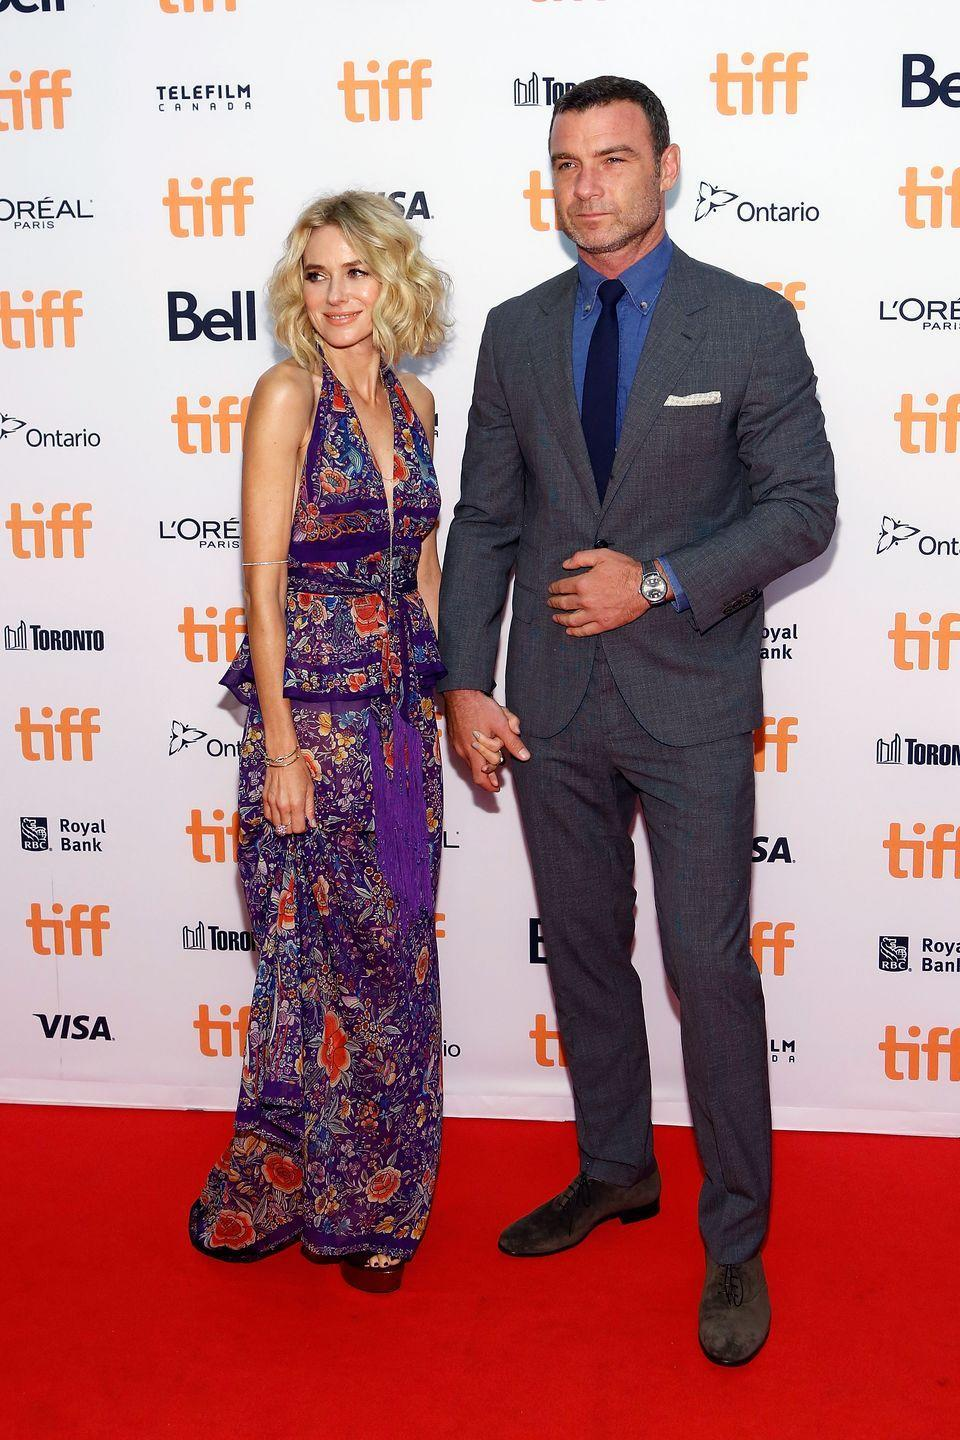 "<p>Watts and Schrieber announced their divorce in 2016, but the couple has remained amicable. The couple even appeared as husband and wife in the 2016 film <em>Chuck.</em> ""It's important to support each other,"" Schrieber said on <em><a href=""https://www.today.com/video/liev-schreiber-on-split-with-naomi-watts-we-ll-always-be-partners-1130061891636"" rel=""nofollow noopener"" target=""_blank"" data-ylk=""slk:Sunday Today with Willie Geist"" class=""link rapid-noclick-resp"">Sunday Today with Willie Geist</a>. </em>""I think the way that we've looked at it is that we'll always be partners with these kids.""</p>"